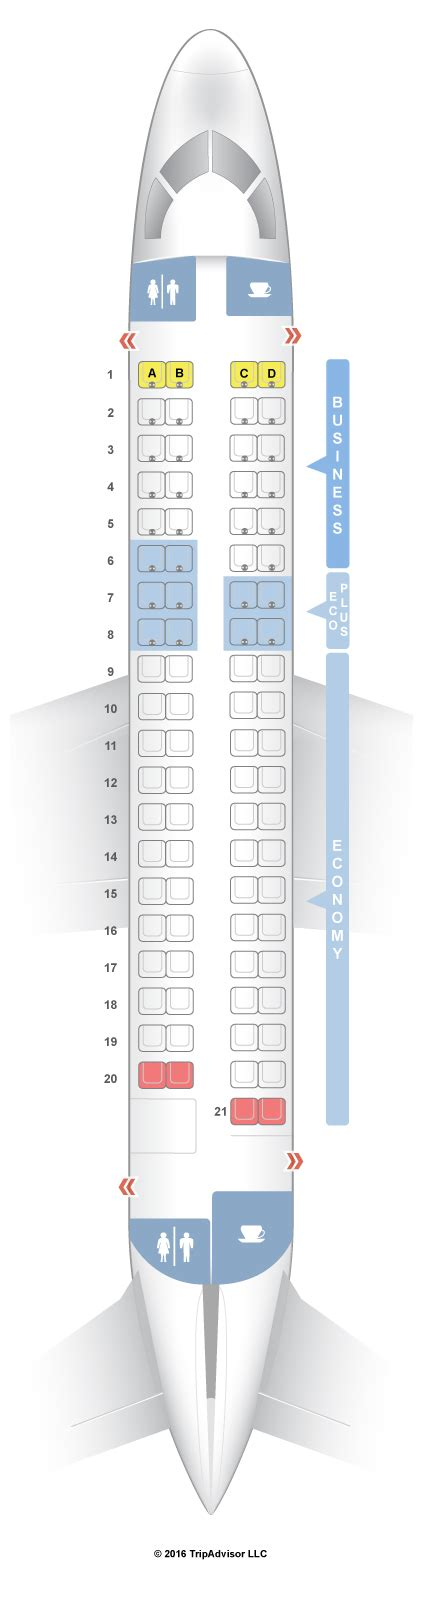 embraer erj 175 seat map seatguru seat map lot airlines embraer erj 175 e75